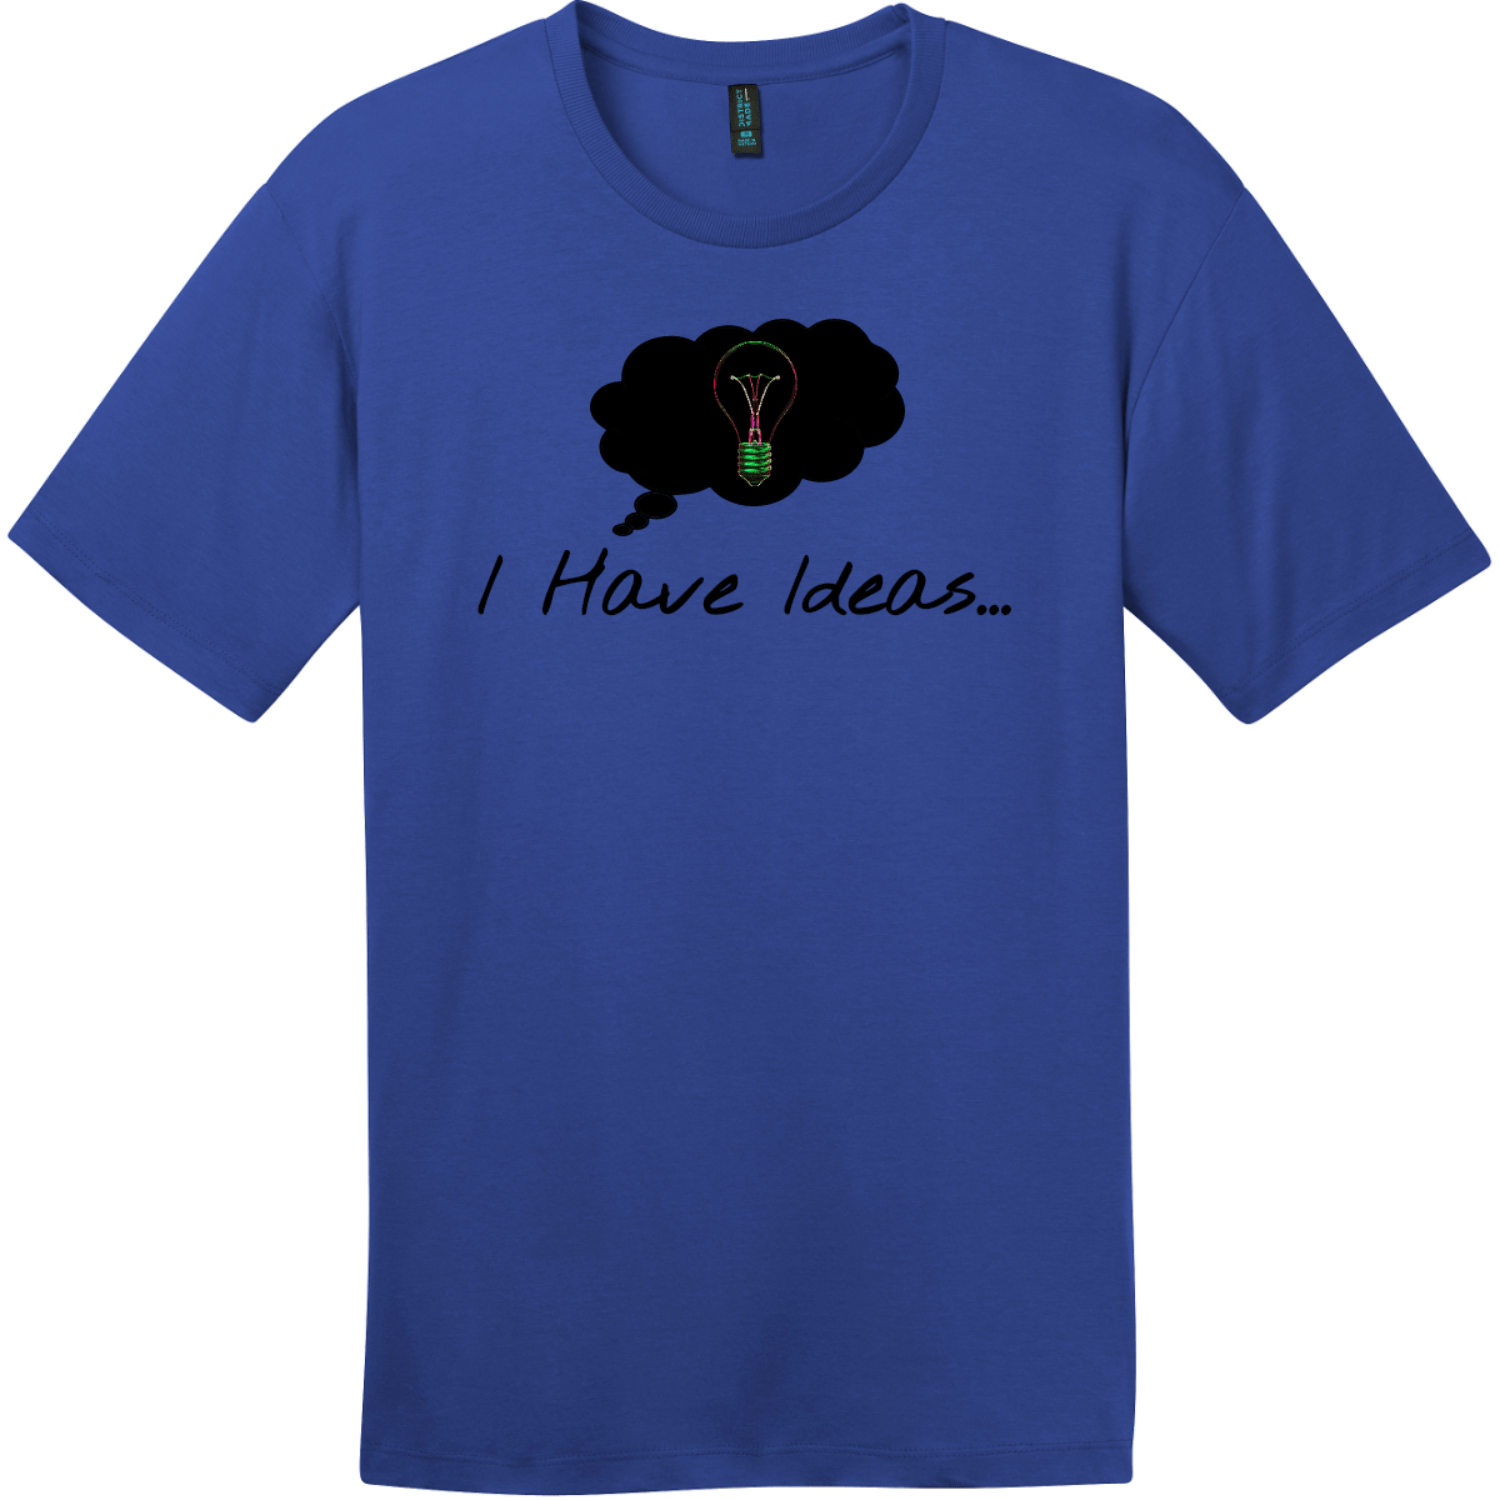 I Have Ideas Light Bulb T-Shirt Deep Royal District Perfect Weight Tee DT104